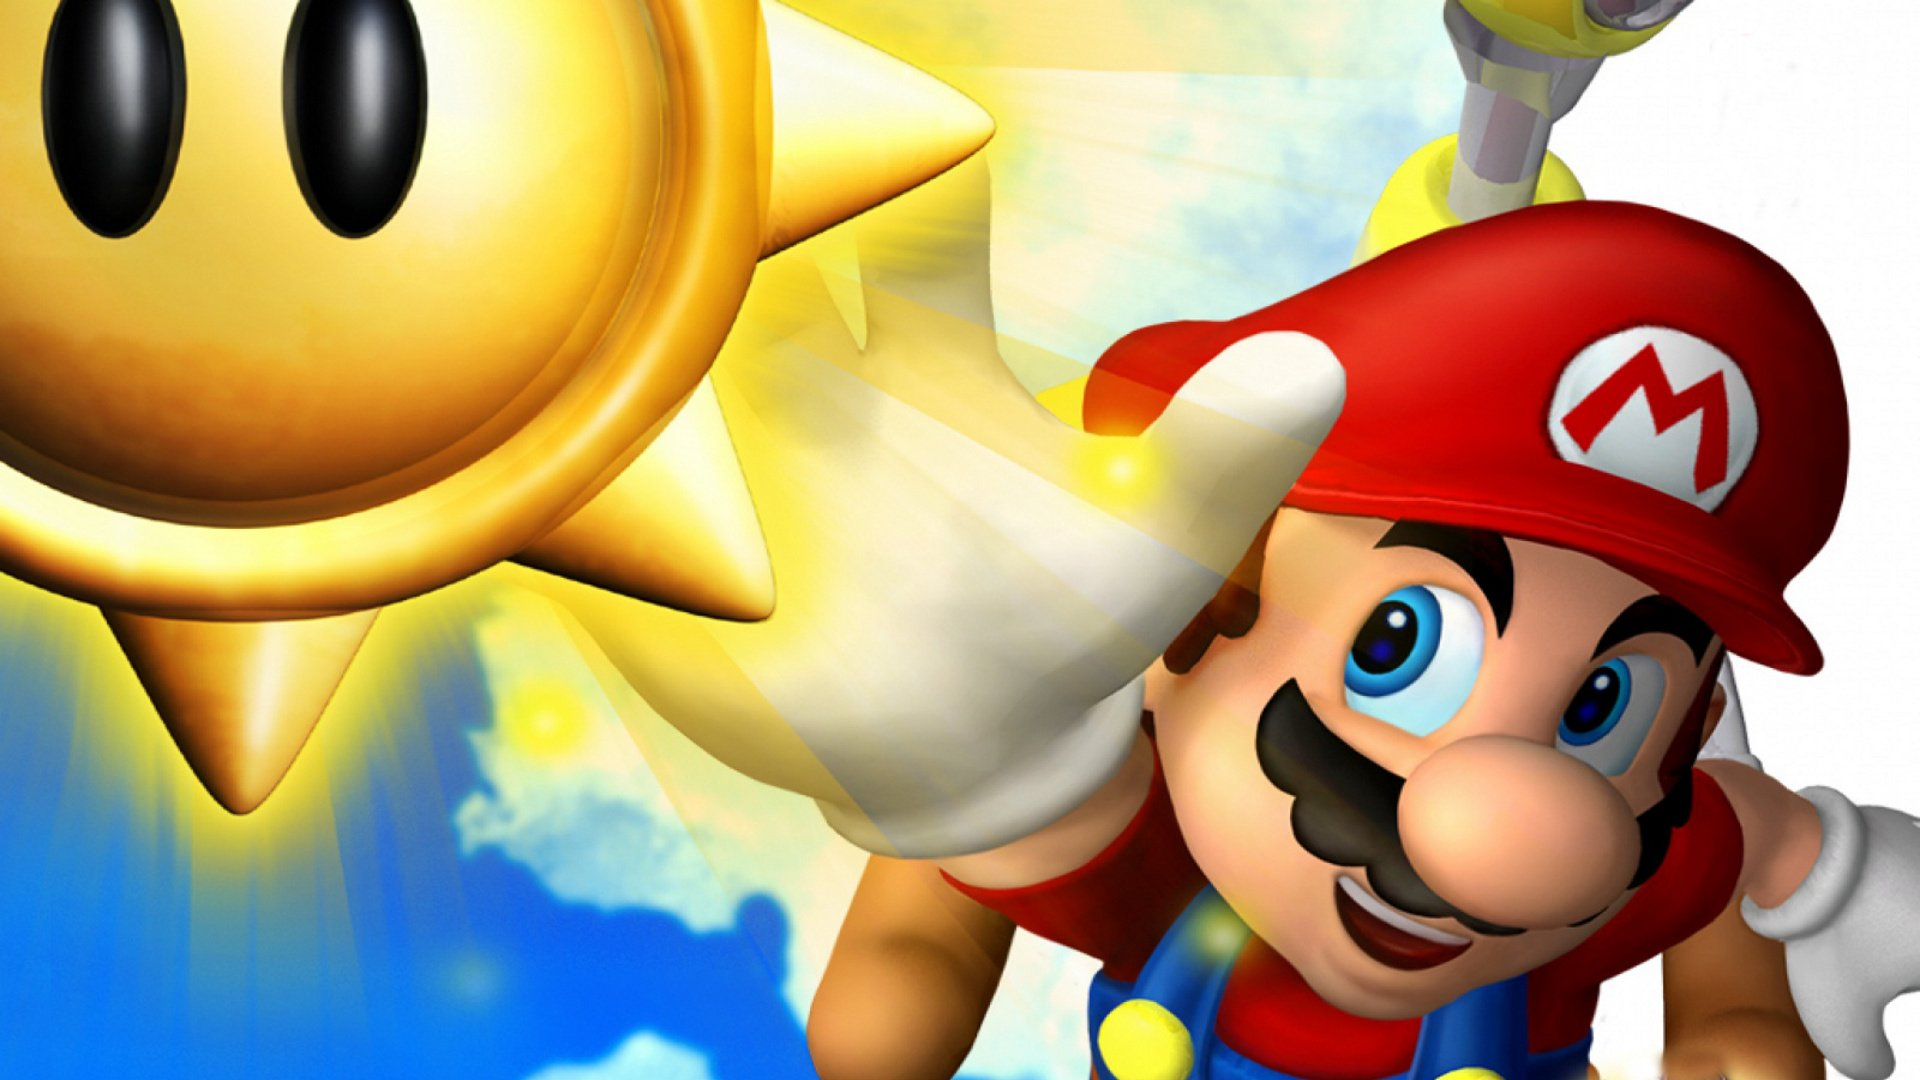 Super Mario Sunshine Hd Wallpaper Background Image 1920x1080